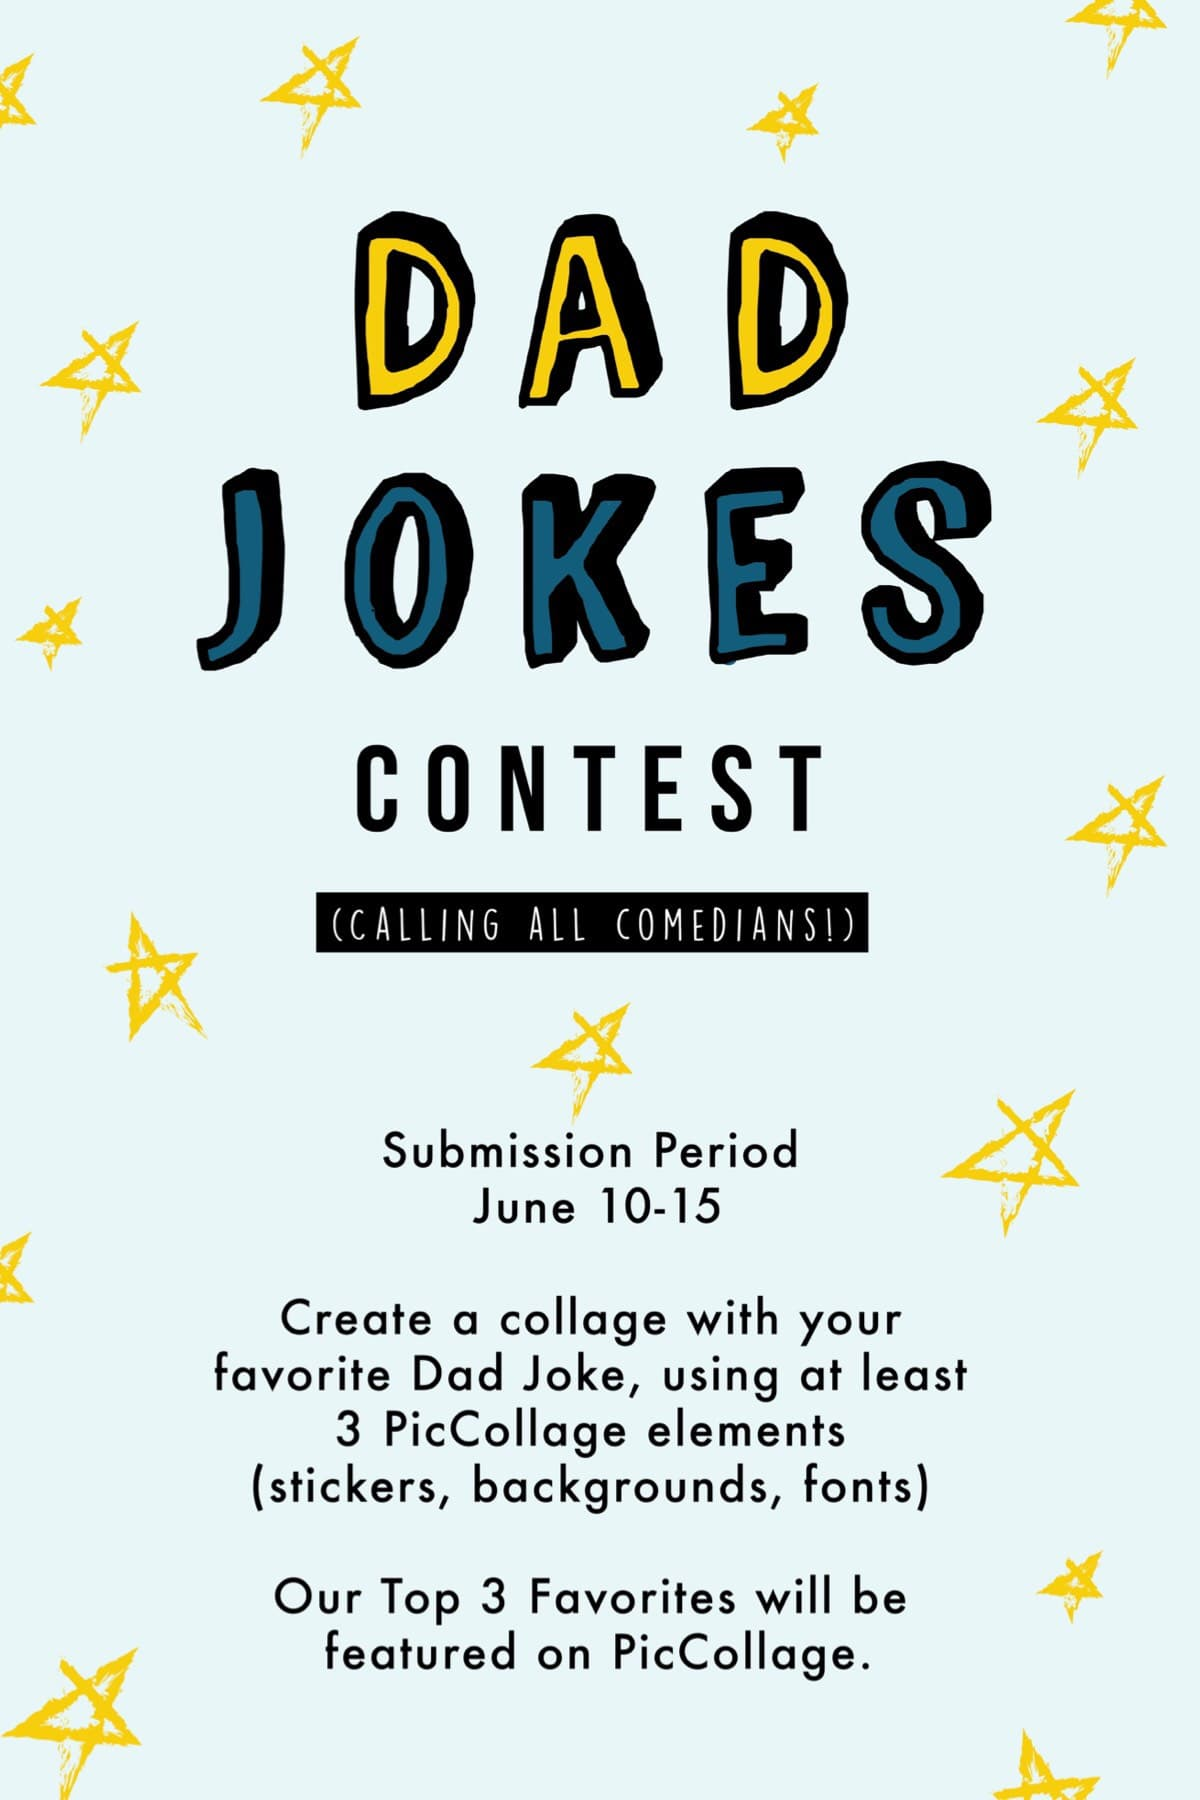 Tell us your favorite dad jokes! 🤣Deadline is June 15, 2019!